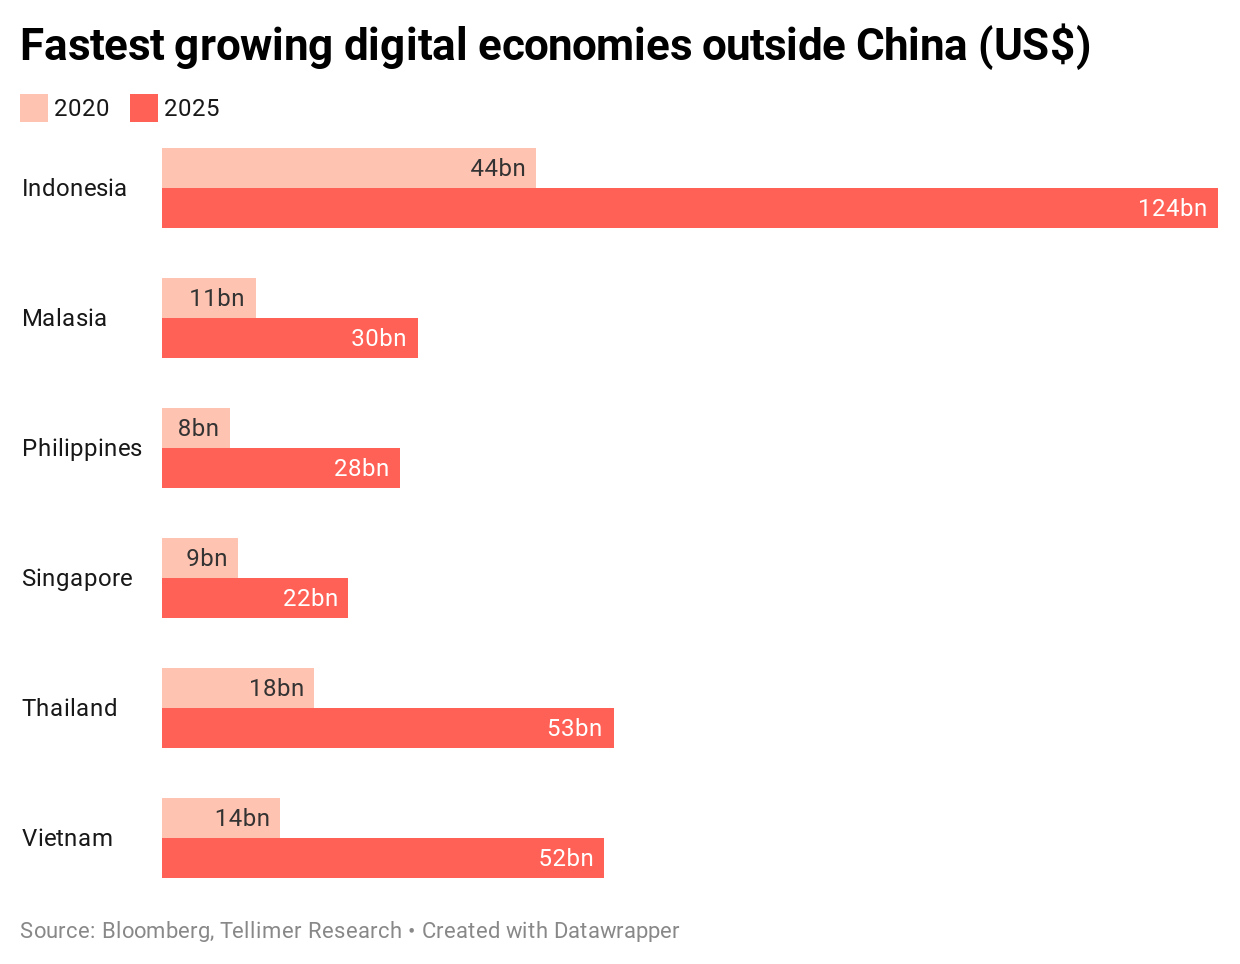 Fastest growing digital economies outside China (US$)